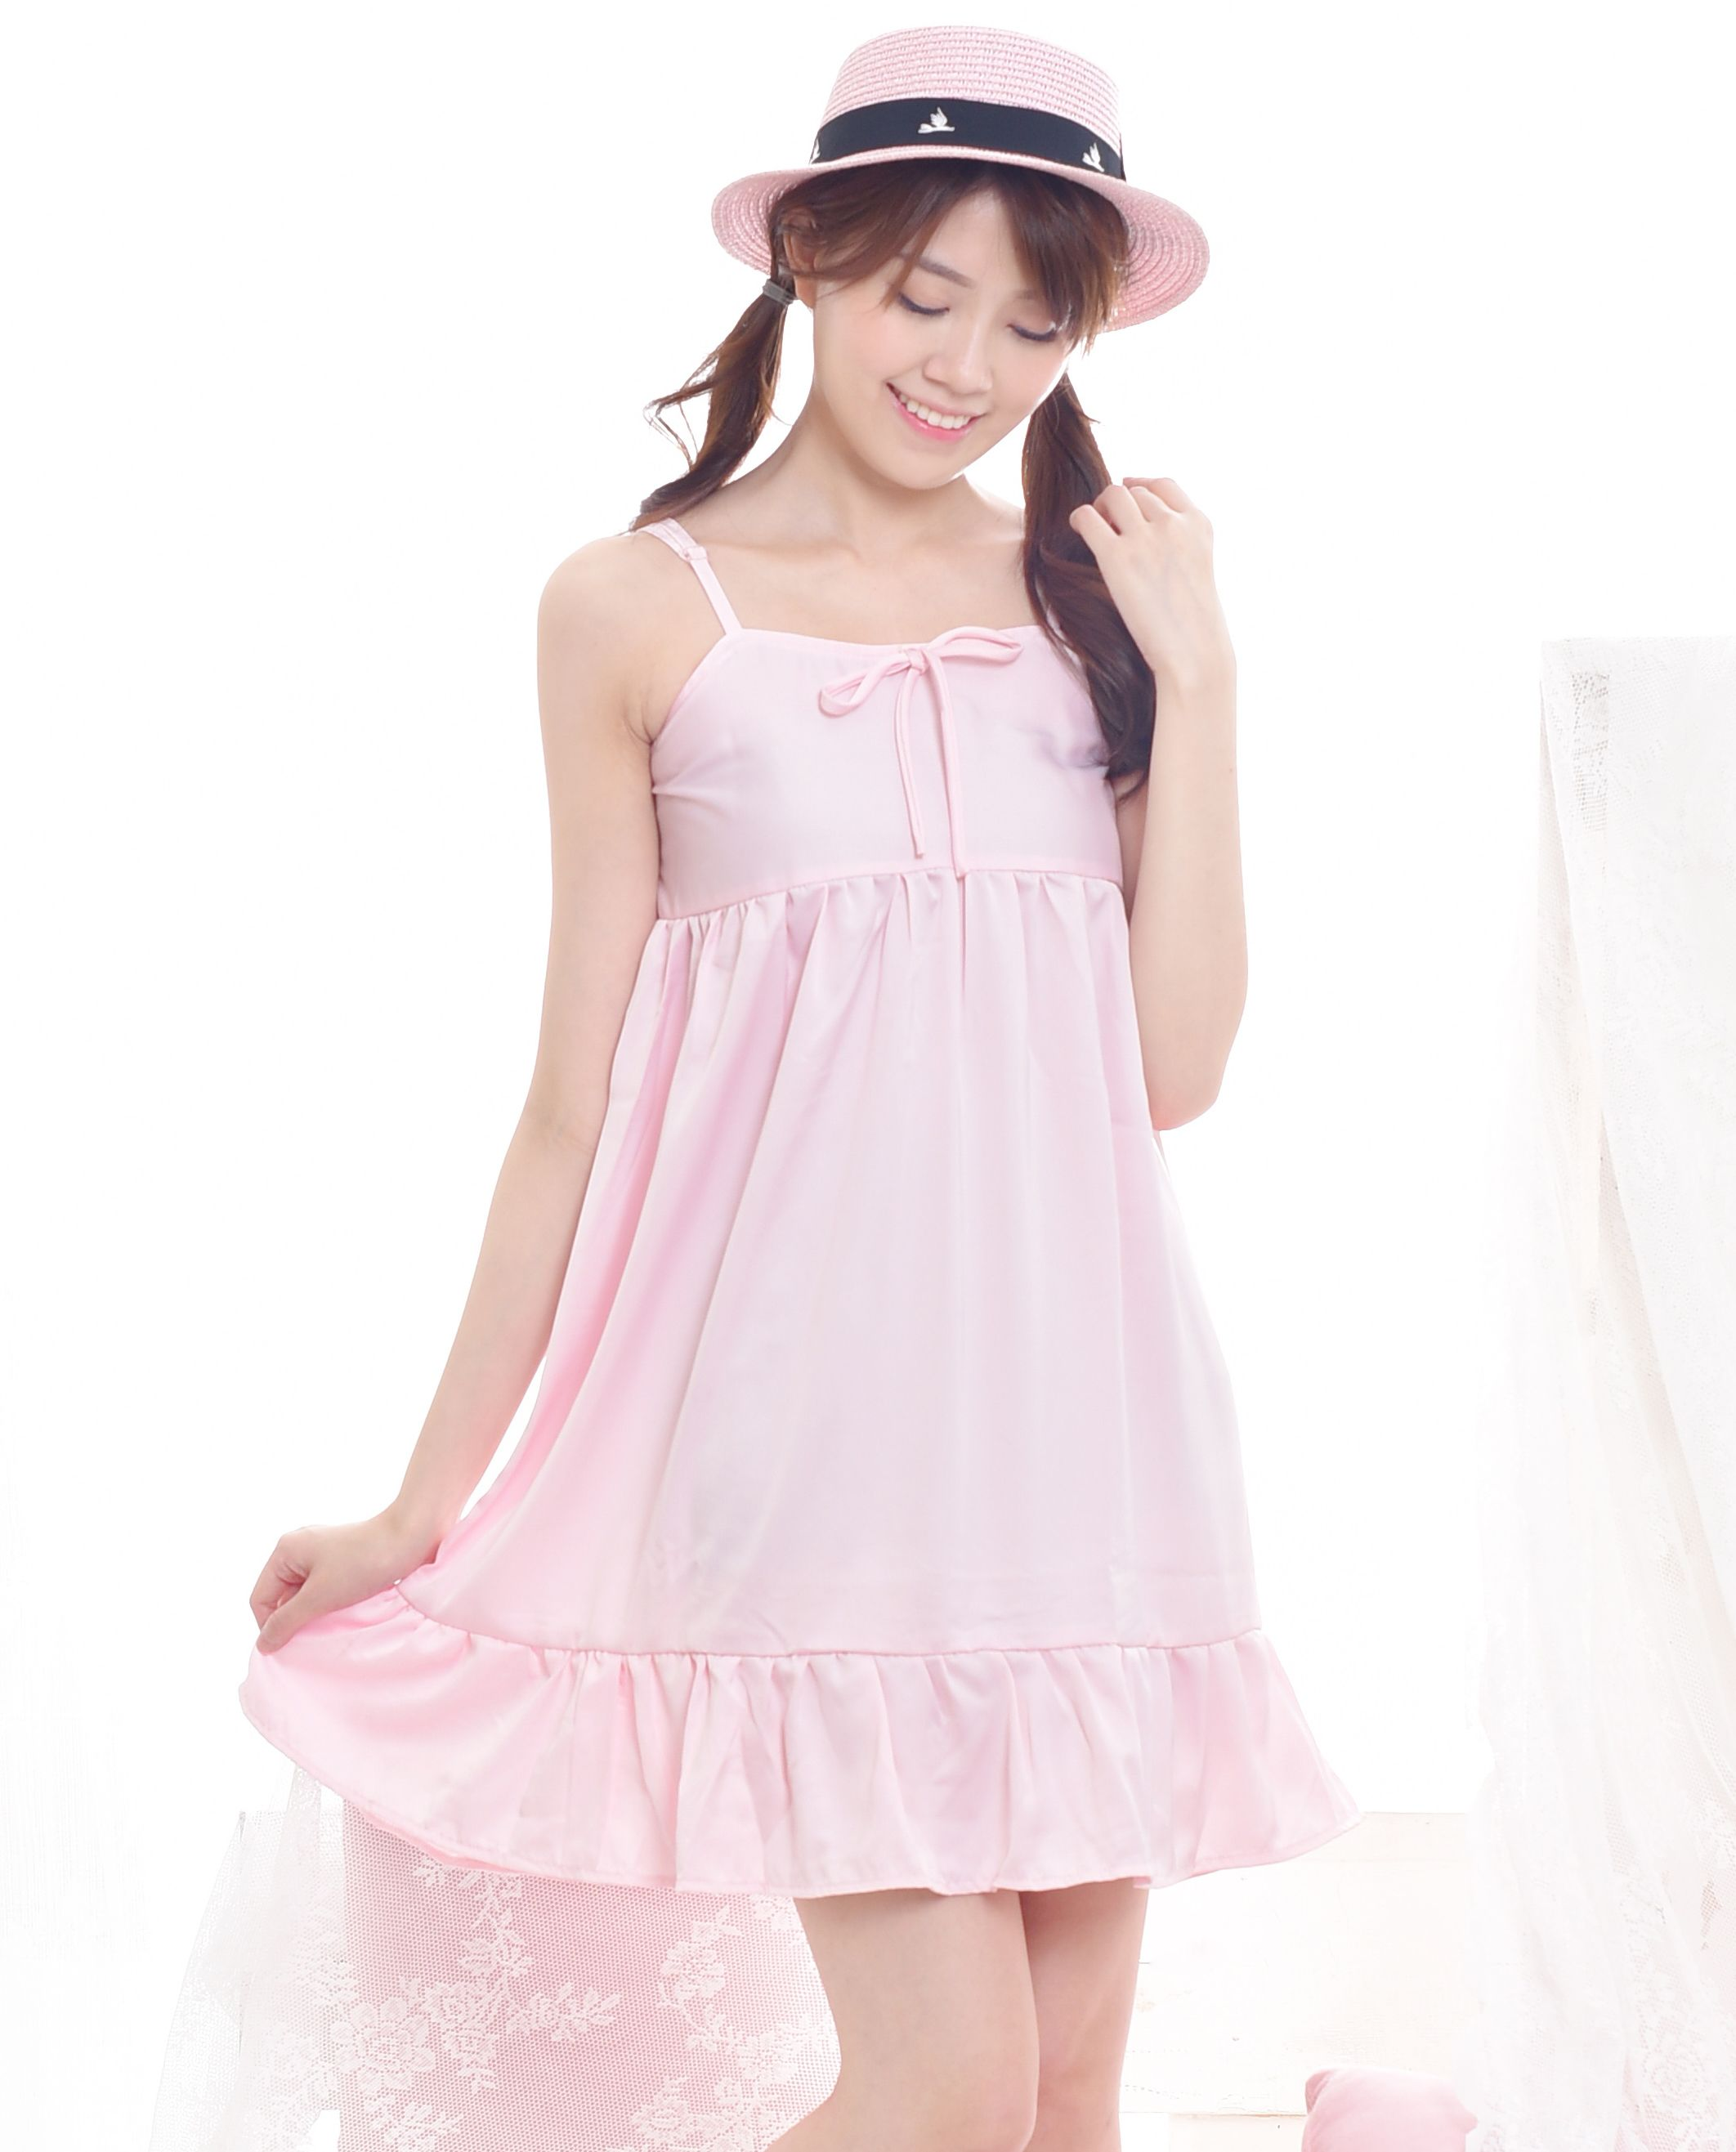 b2767c757ac7 Shop cute woman floral babydoll dress in baby pink color. Perfect for  spring and summer. Jual dress babydoll floral dengan tali spaghetti.